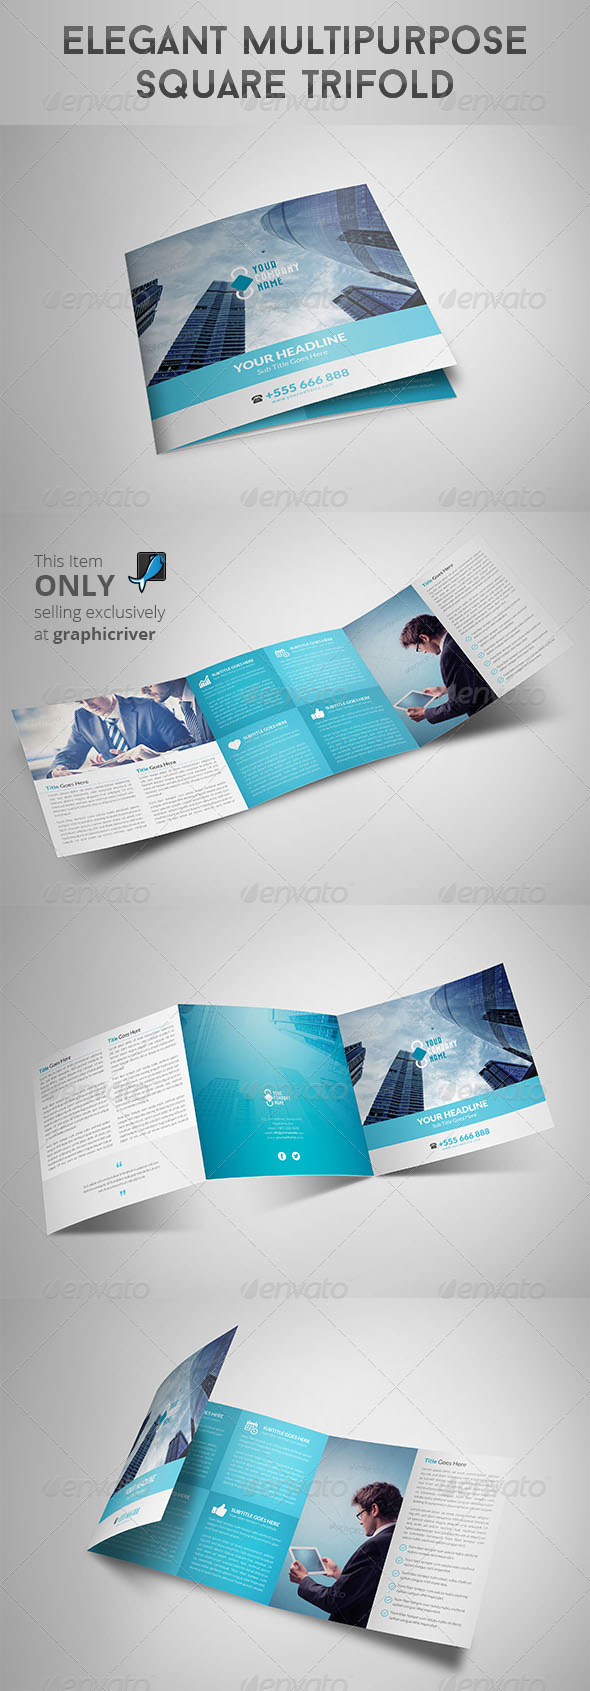 GraphicRiver Elegant Multipurpose Square Trifold 8519574